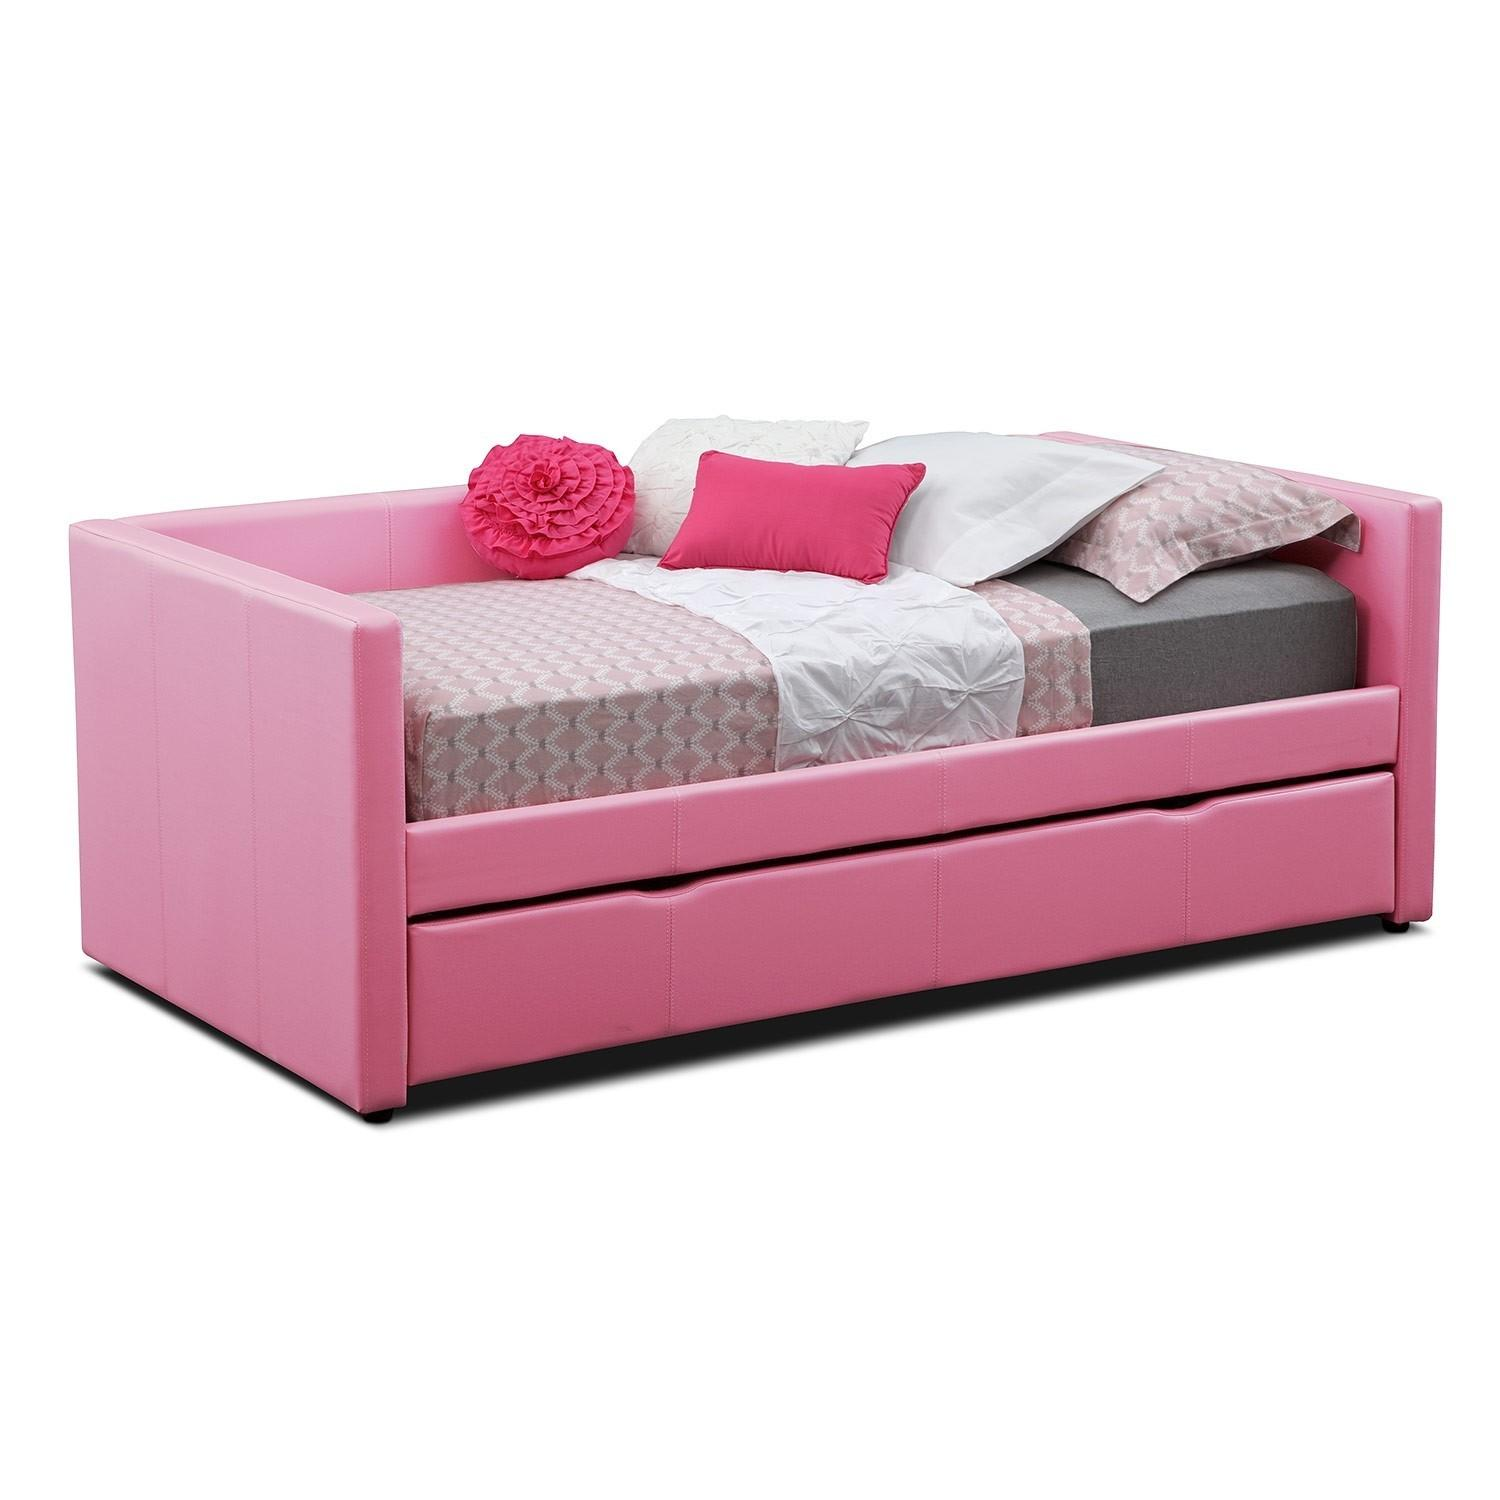 Daybed Trundle Kids Pop Bed